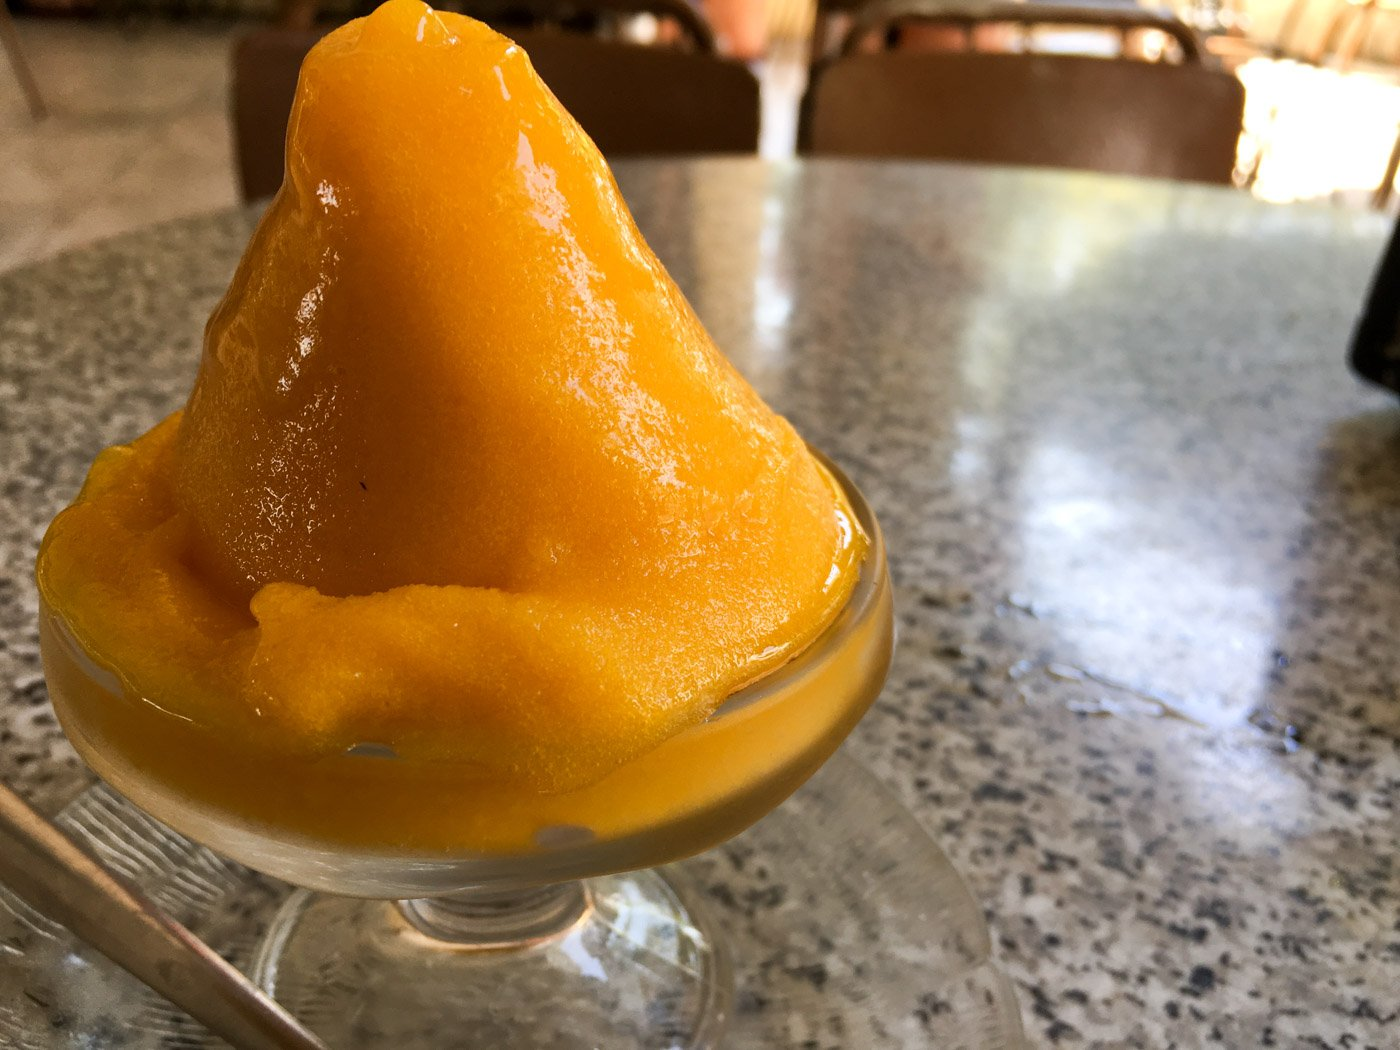 Merida is a city filled with delicious food and even better desserts. Here are some of the best desserts in Merida Mexico!